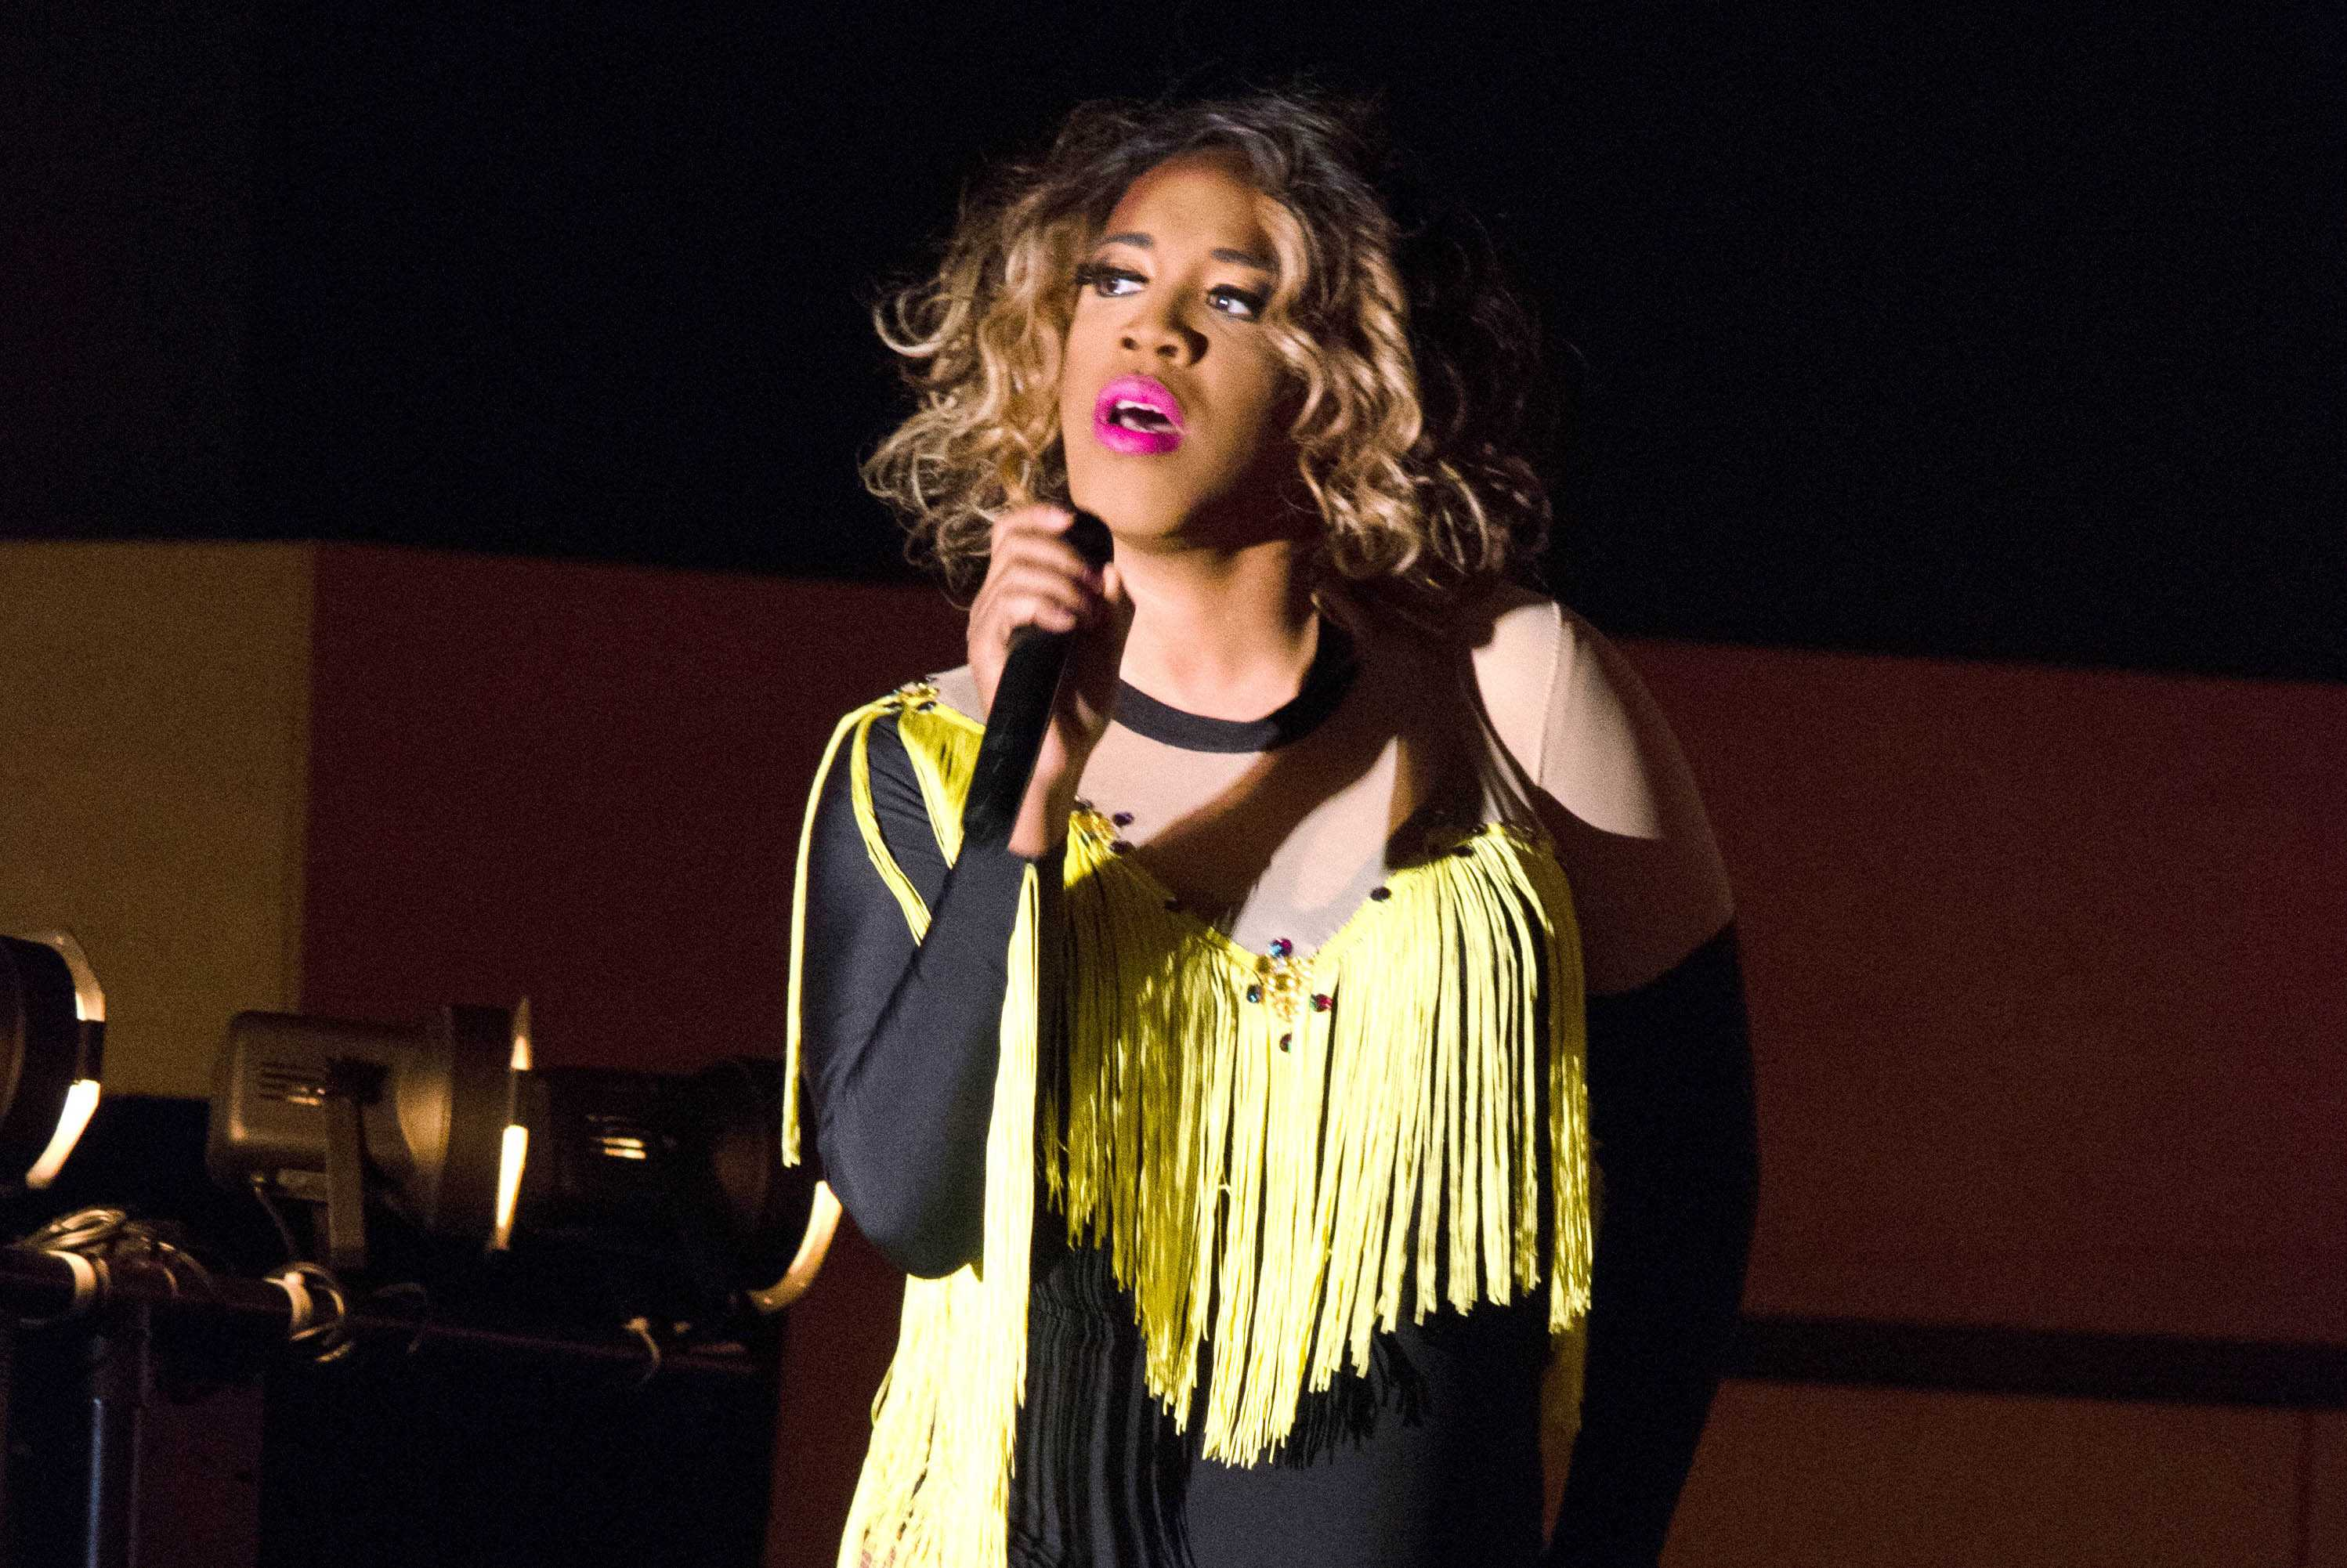 Annual drag show promotes self-expression